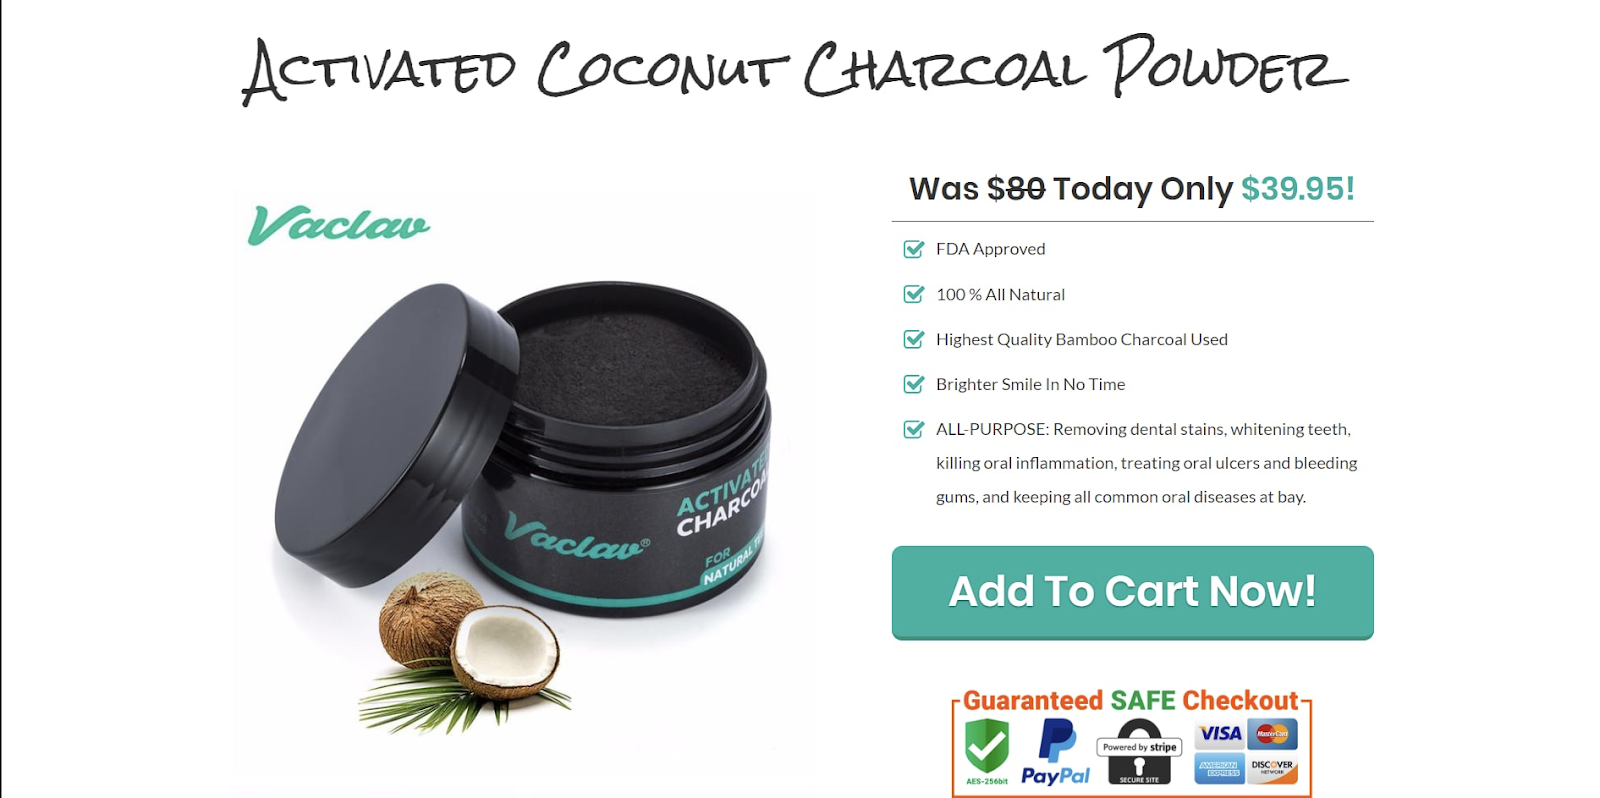 Sales page for activated charcoal powder